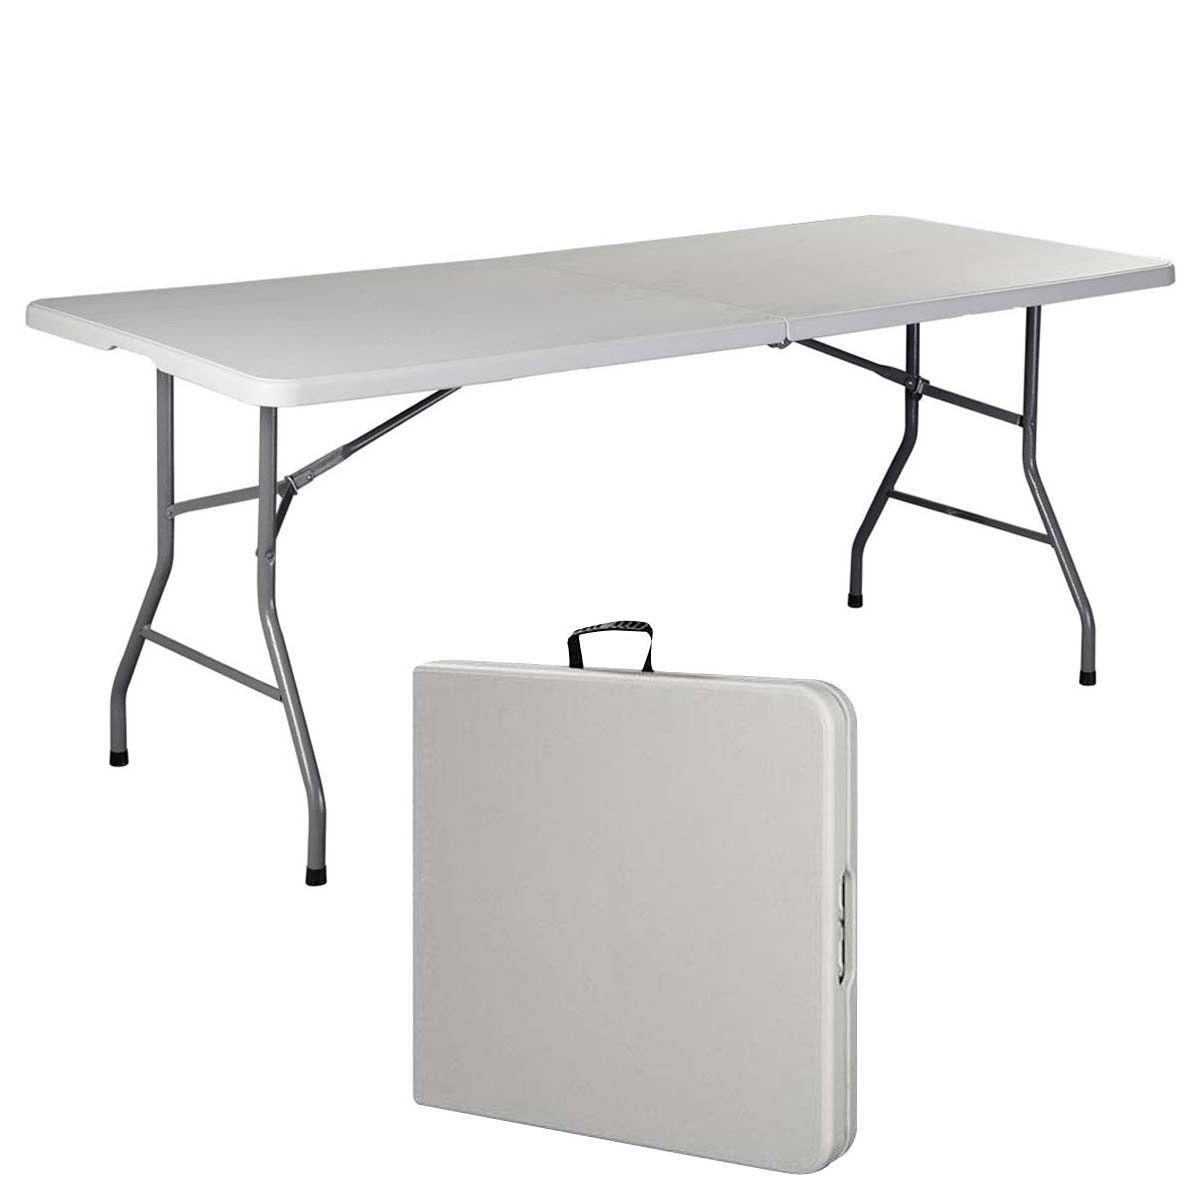 6 Ft Folding Table New Office Centerfold Plastic Home Patio Party Garden Ebay